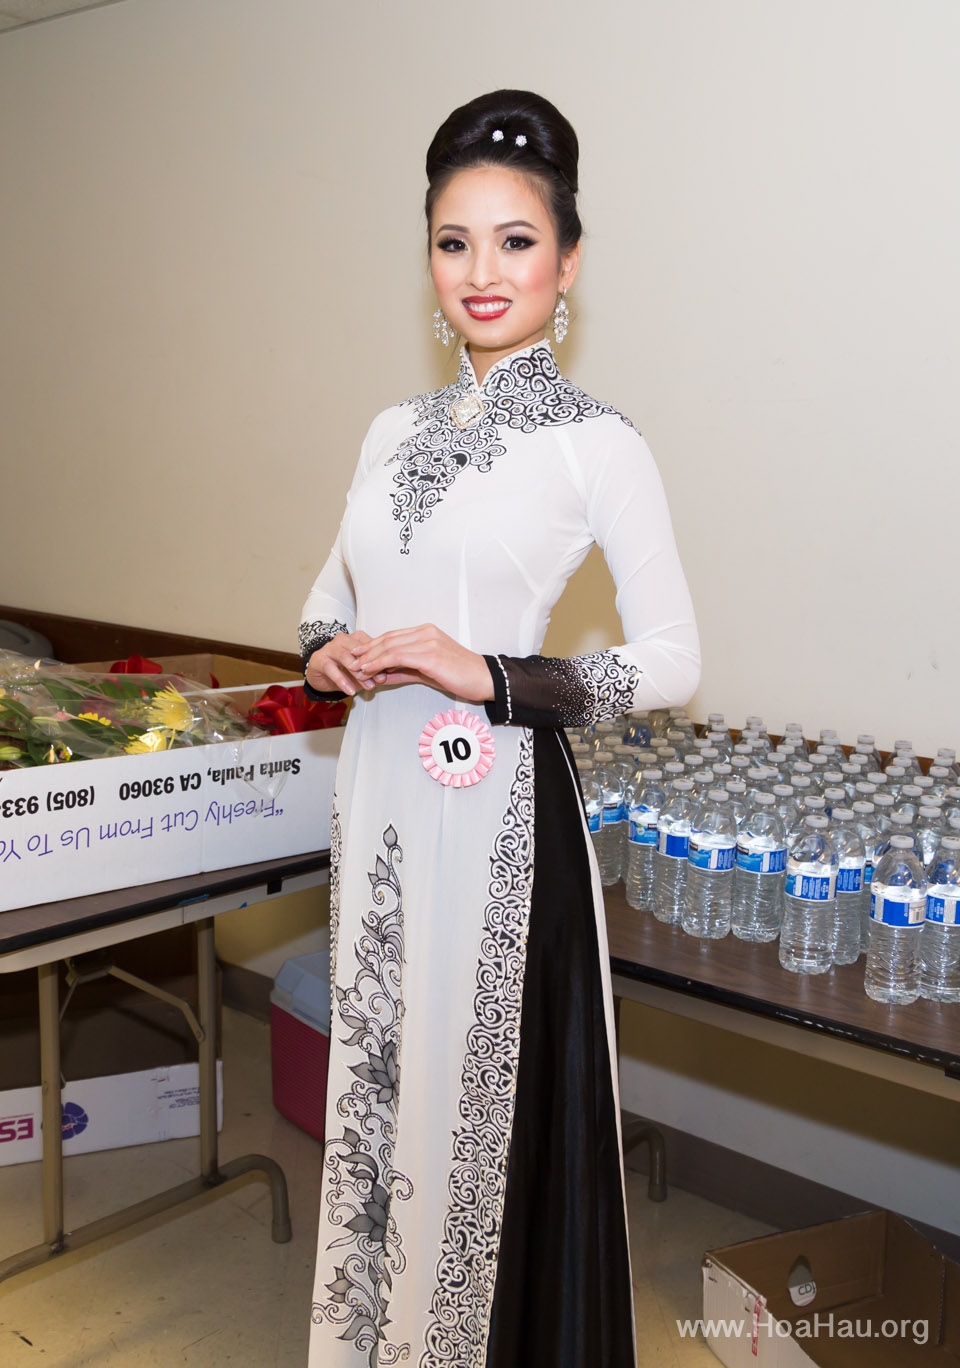 Miss Vietnam of Northern California 2014 - Hoa Hau Ao Dai Bac Cali 2014 - Behind the Scenes - Image 230